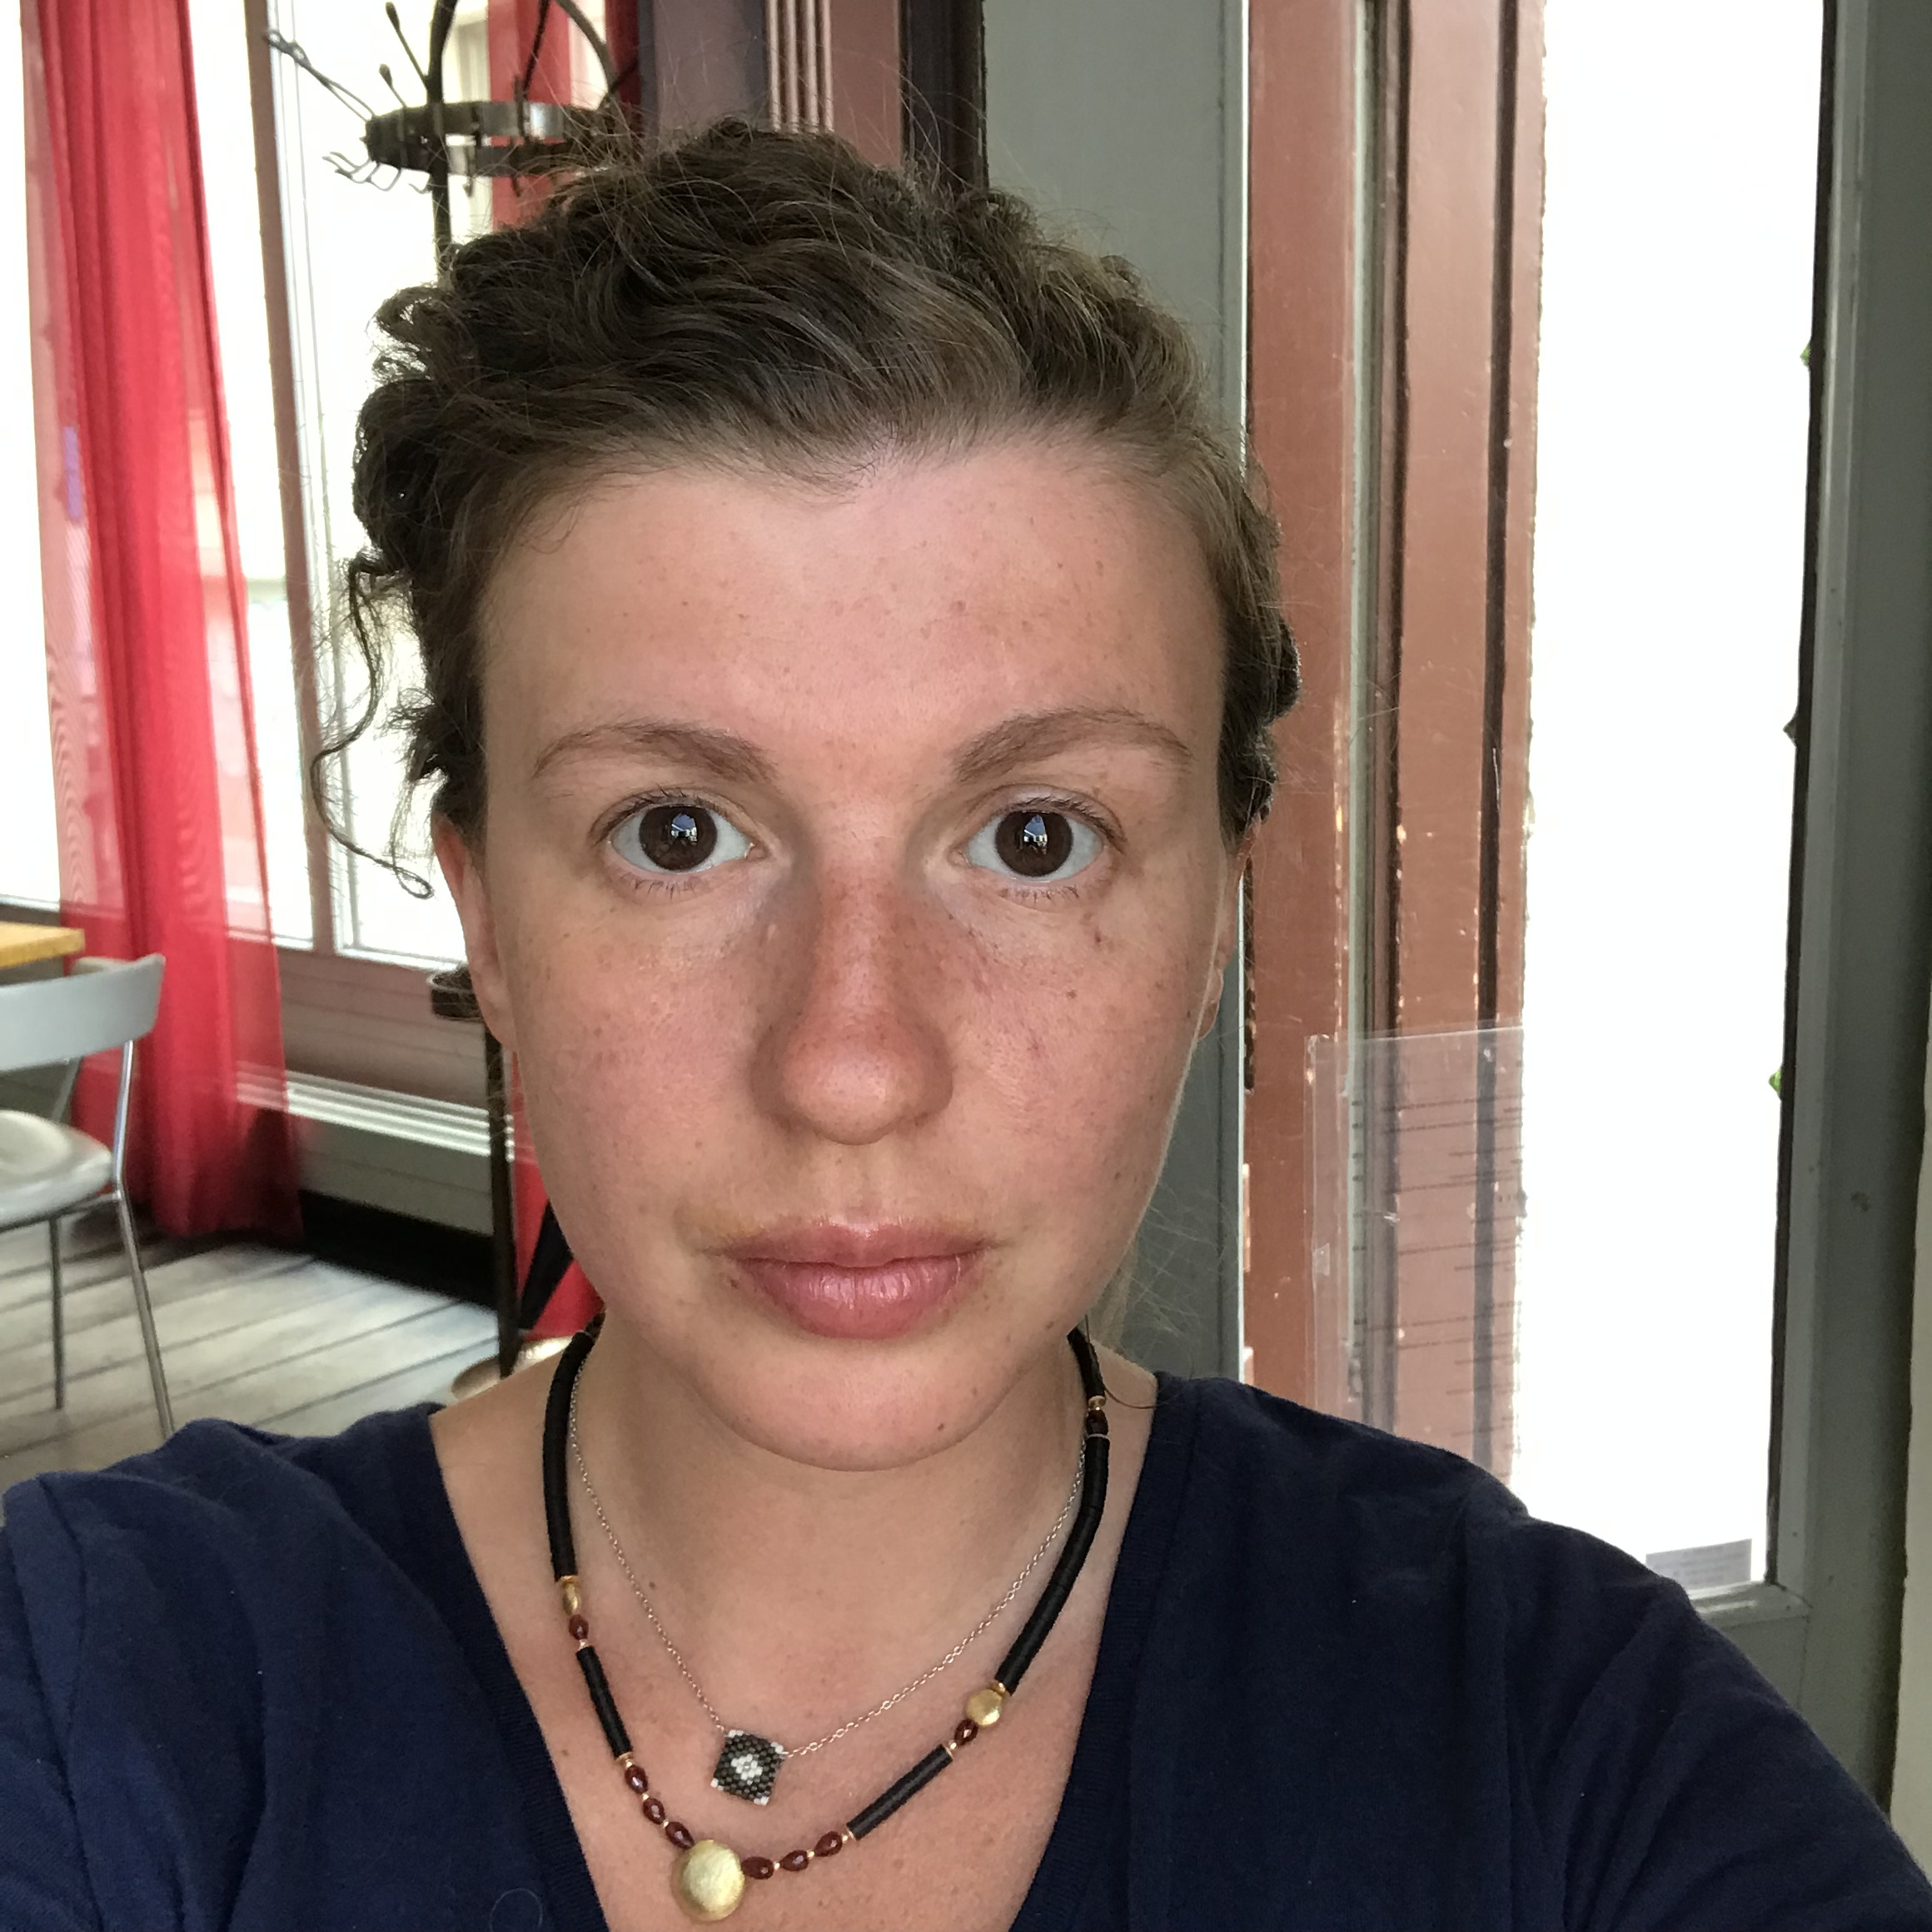 Luba Kaper - Hi! My name is Luba. I'm super excited to start this program. I hope it will help me to start a new life. My 10 year old son loves coding, so i hope we can lern new things together with him!:)